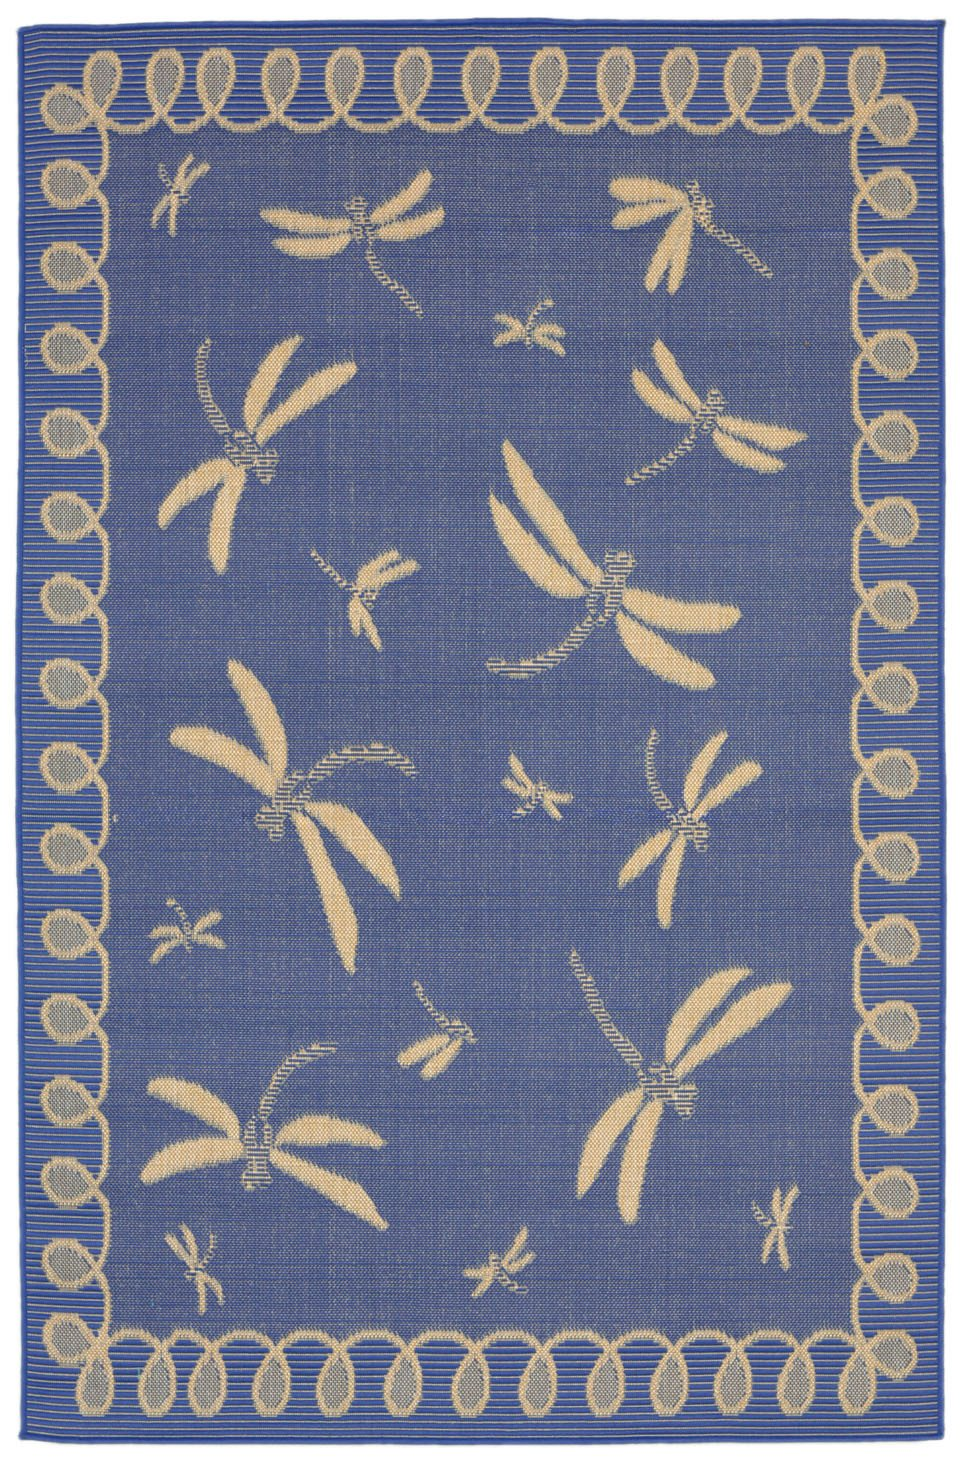 Trans-Ocean Imports TER80179133 Terrace Collection Blue Finish Everywear Rug from Trans-Ocean